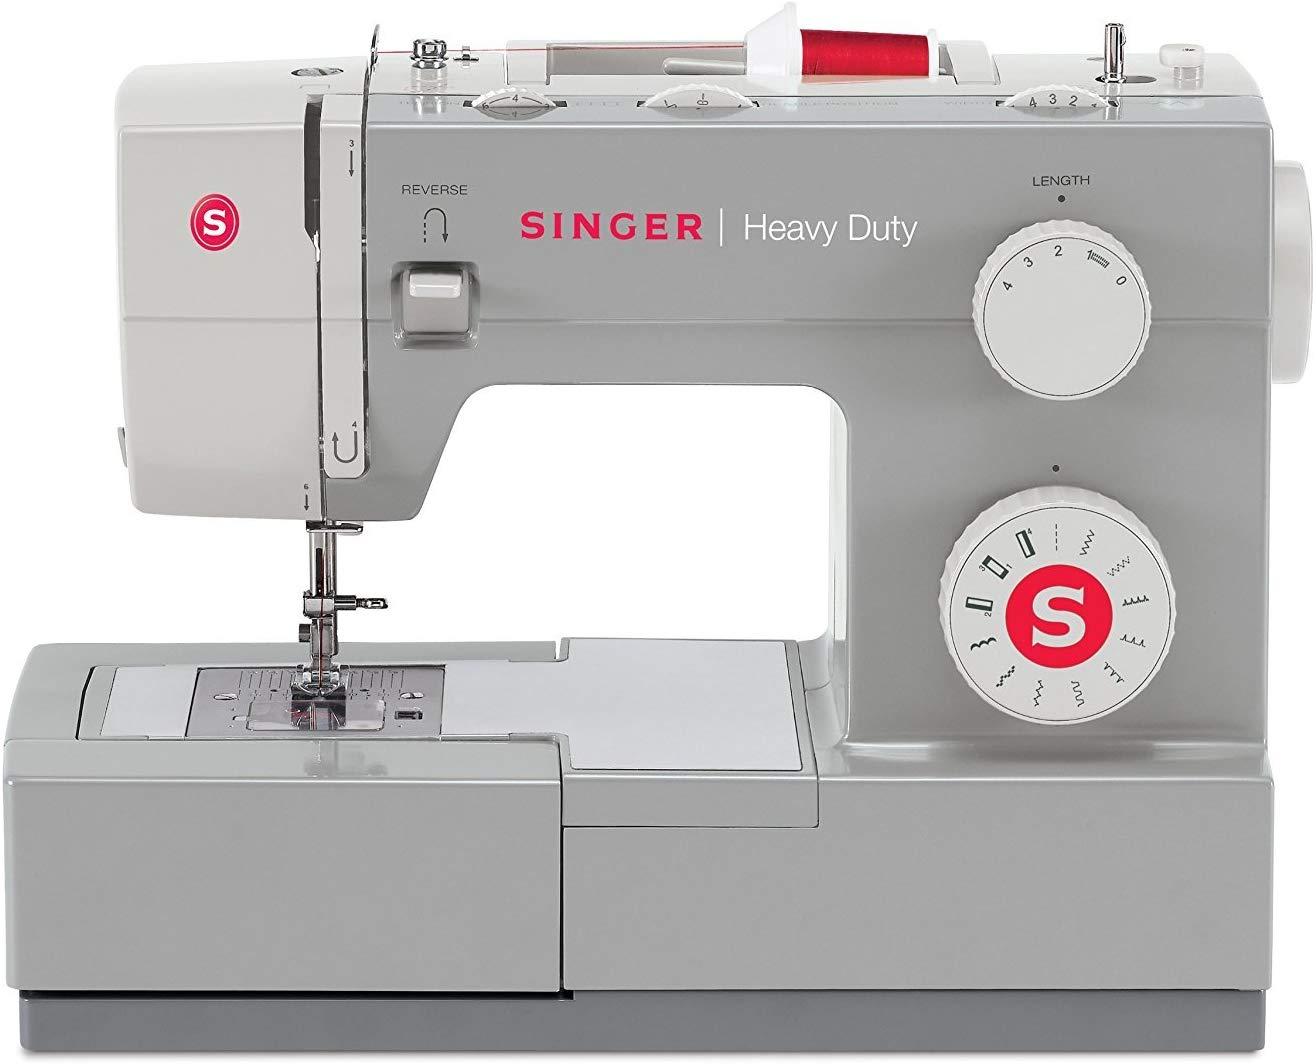 Singer Heavy Duty 4411 Sewing Machine - Heavy Duty Sewing Machines